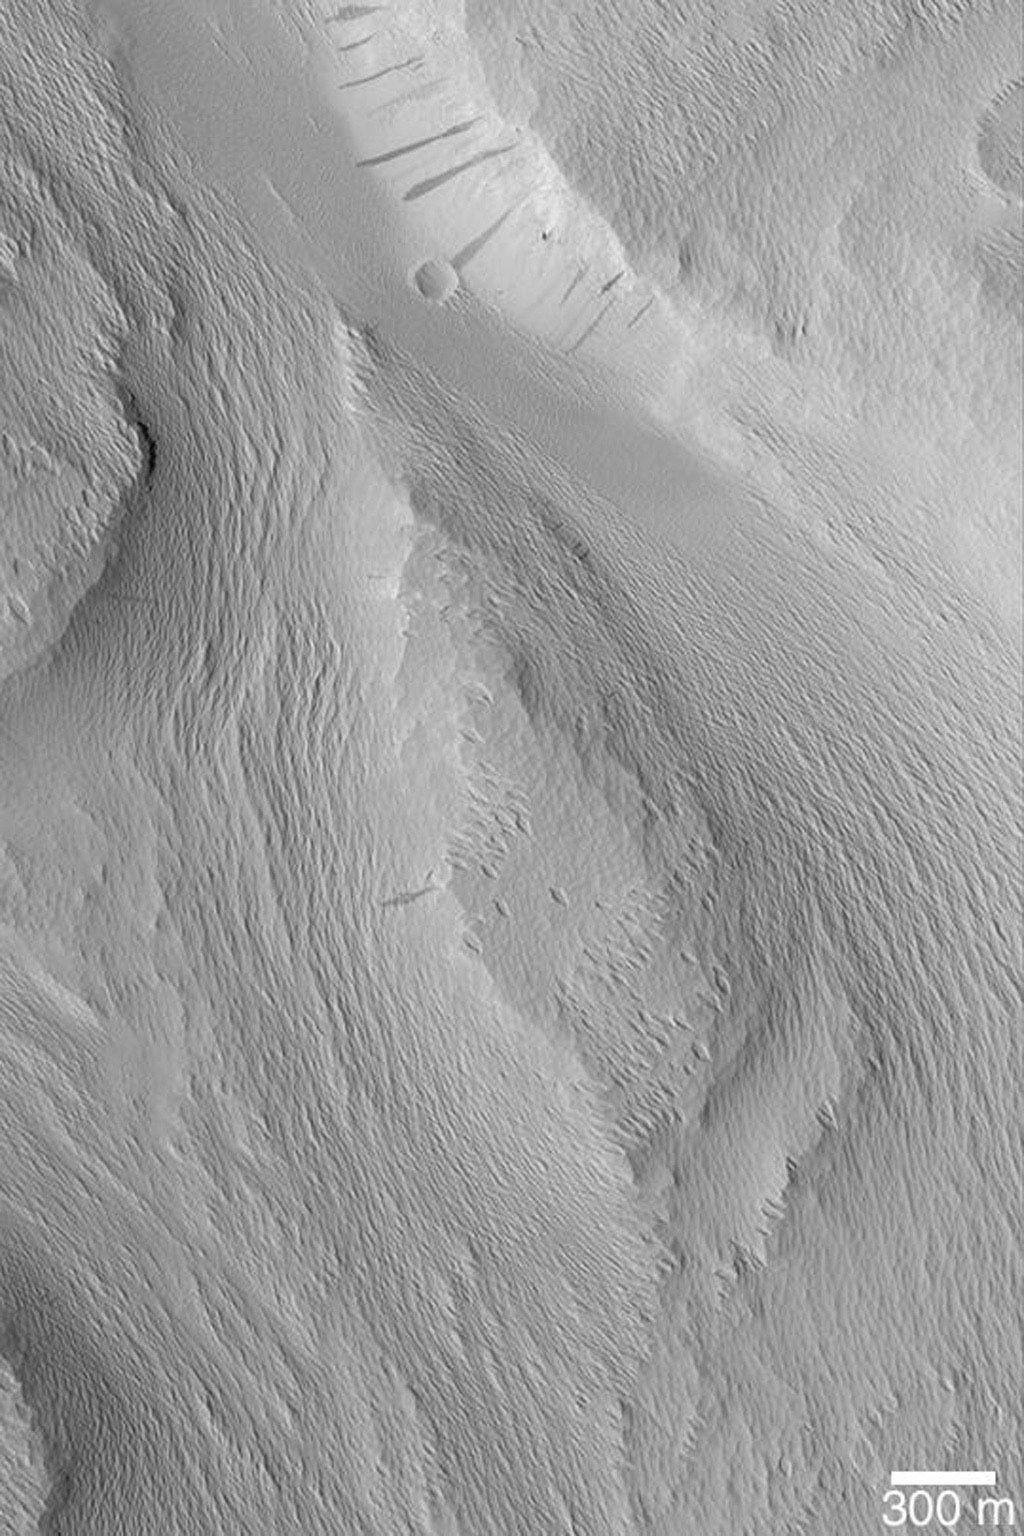 NASA's Mars Global Surveyor shows the wind-eroded surfaces of the Labou Vallis system on Mars. The original valley walls and floor were covered with a material that was later eroded by wind to form the sharp, rough textured terrain present here.